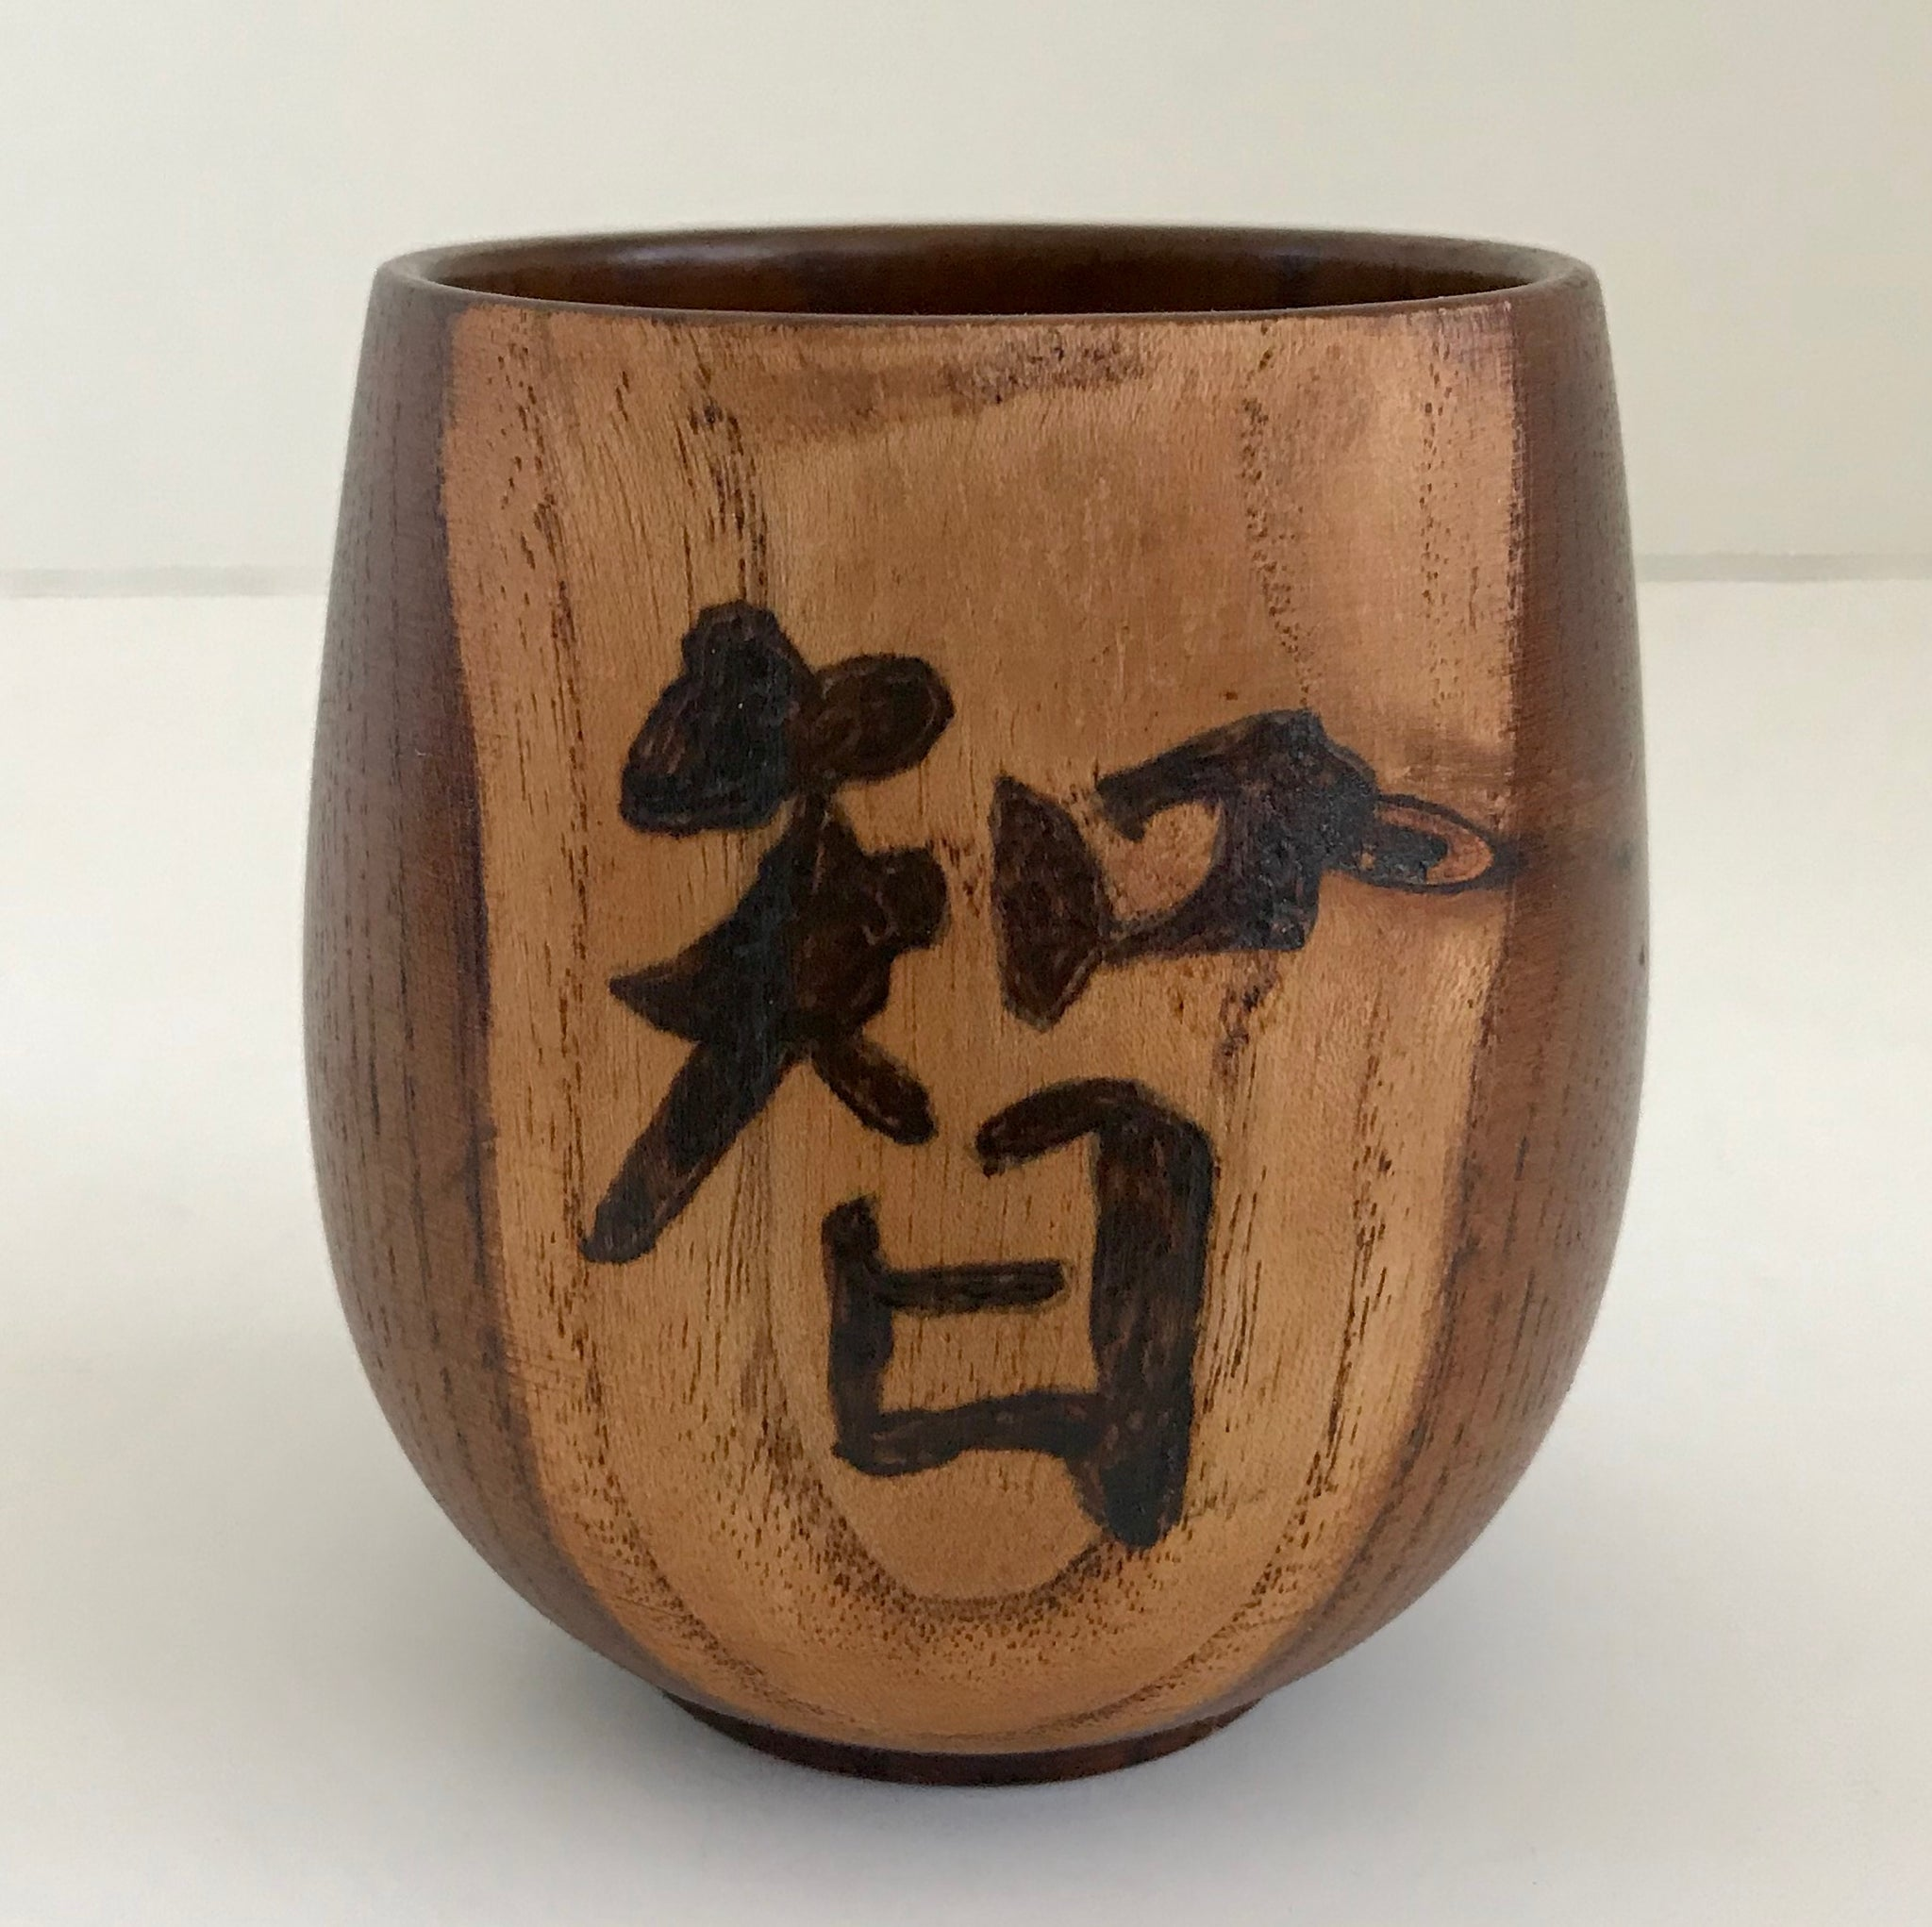 Bamboo Cup With Wood Burned Chinese Calender Symbol For Wisdom